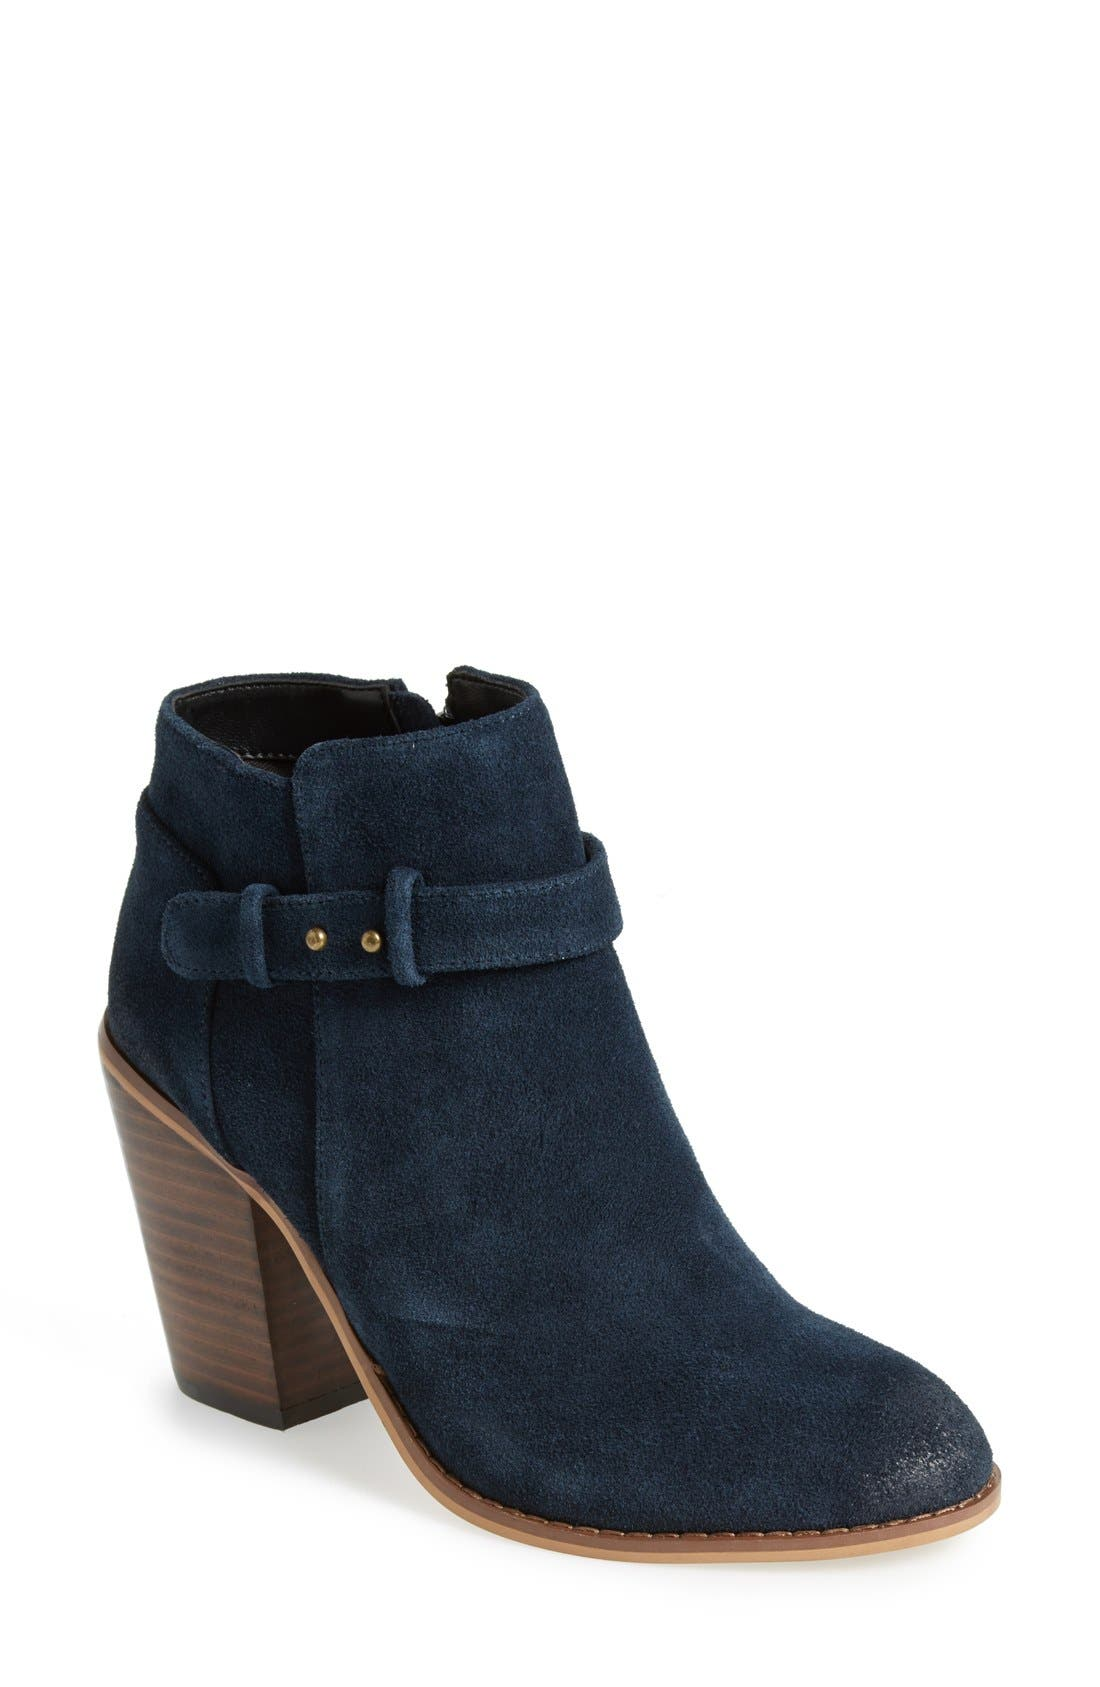 'Lyriq' Bootie,                             Main thumbnail 1, color,                             INK NAVY SUEDE